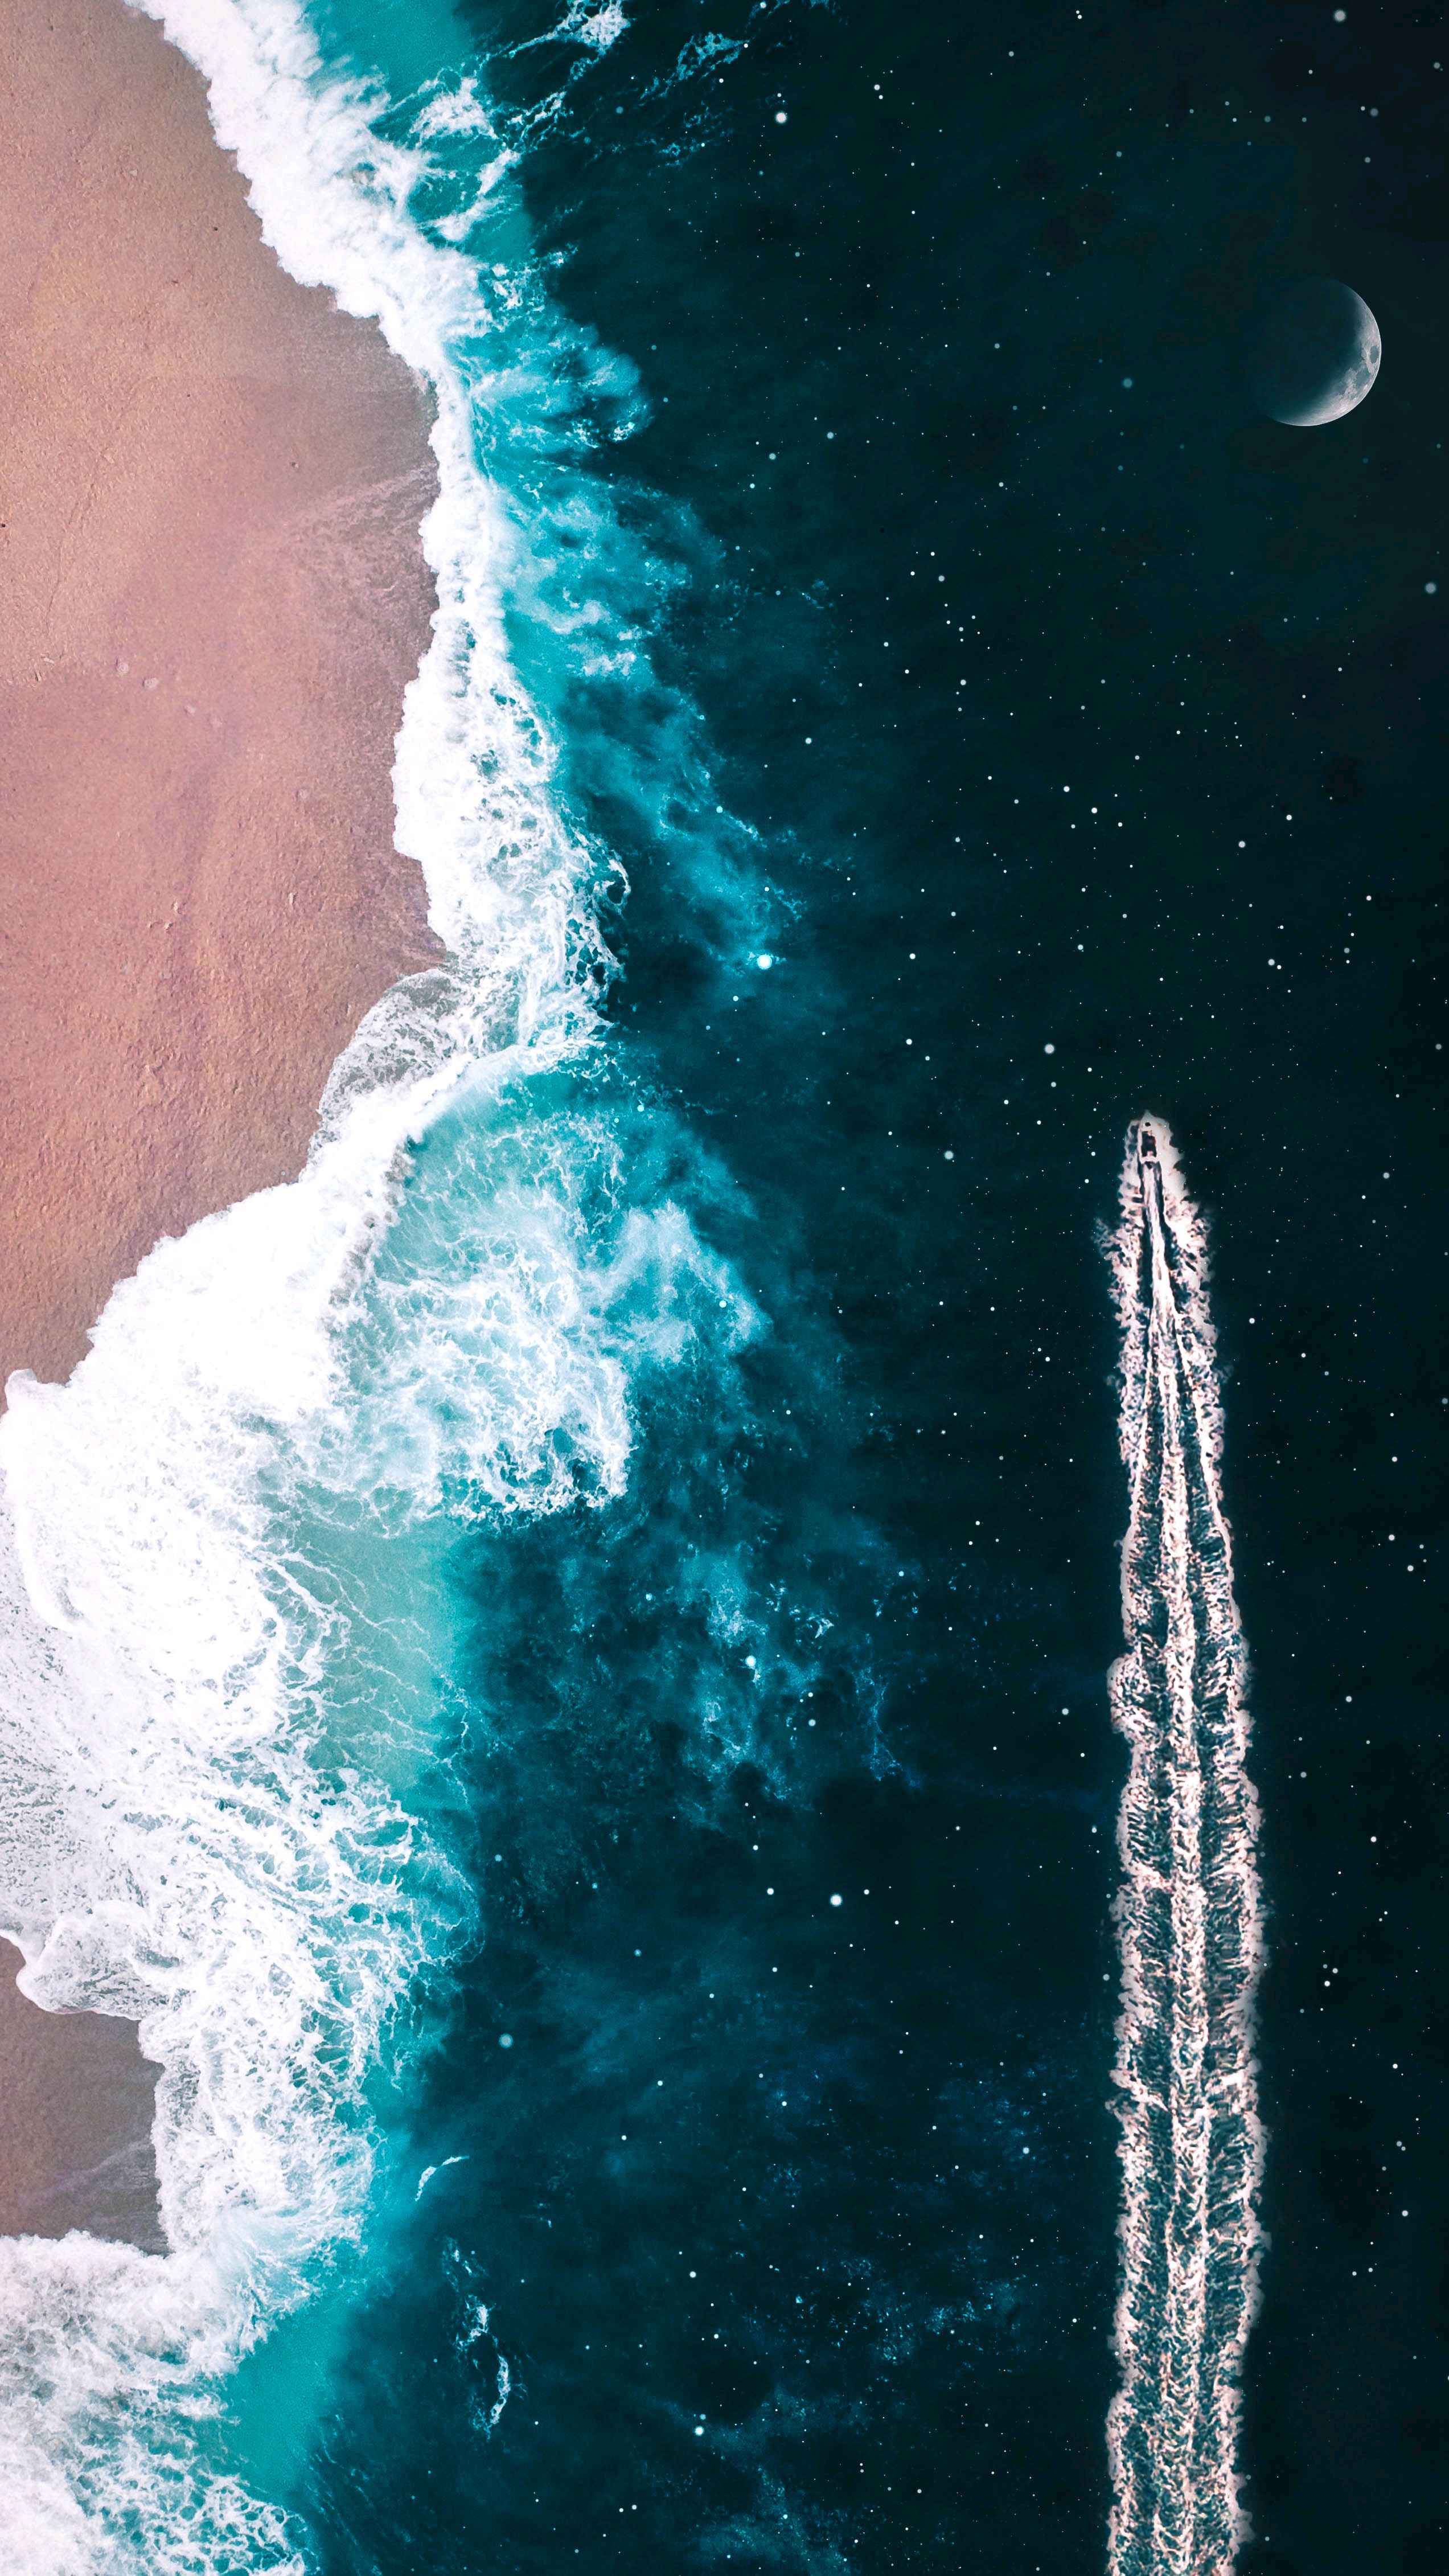 Army Iphone X Wallpaper Sailing In Sea Of Stars Iphone Wallpaper Iphone Wallpapers